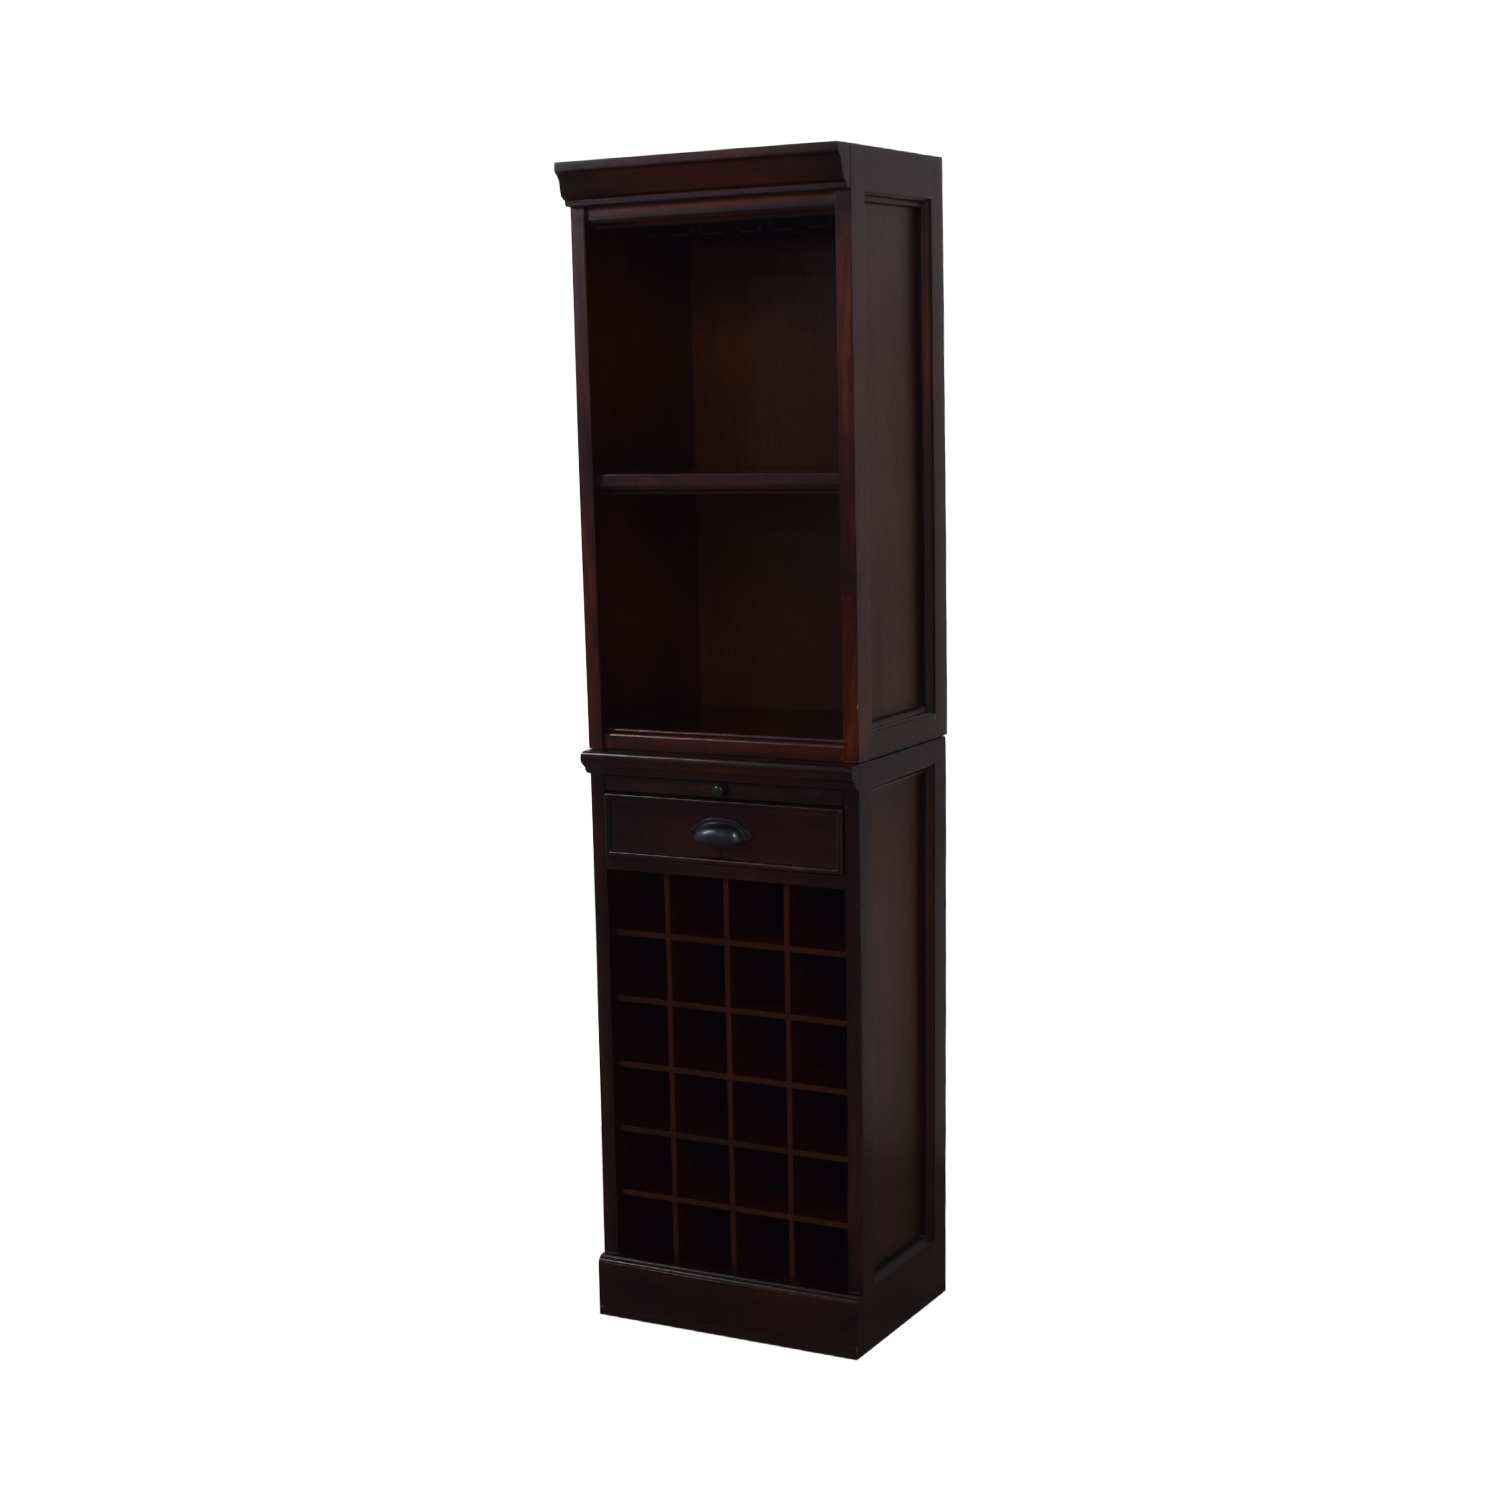 Pottery Barn Pottery Barn Wine Grid Cabinet Bar Tower on sale